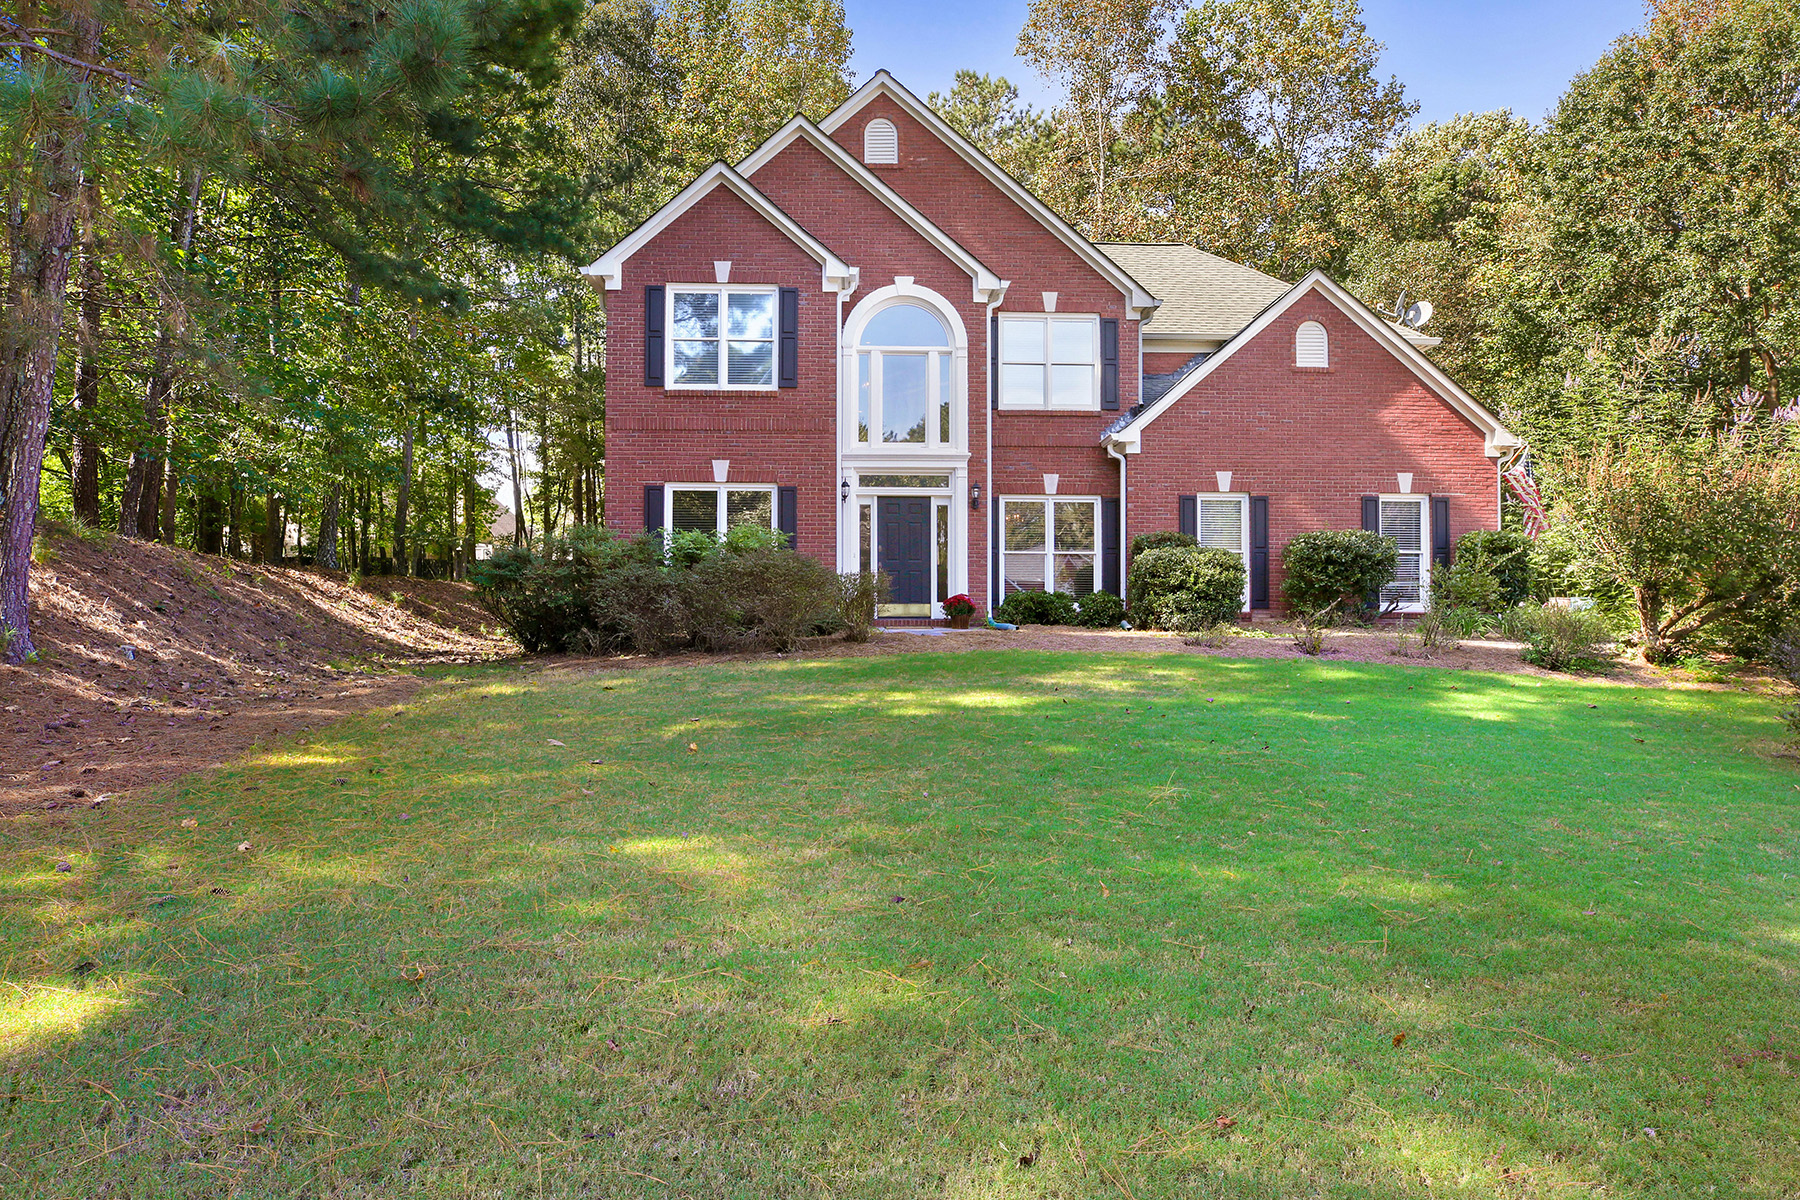 Single Family Home for Sale at Freshly Painted - Five Bedroom - Brick Traditional 6625 Eagle Point Suwanee, Georgia 30024 United States